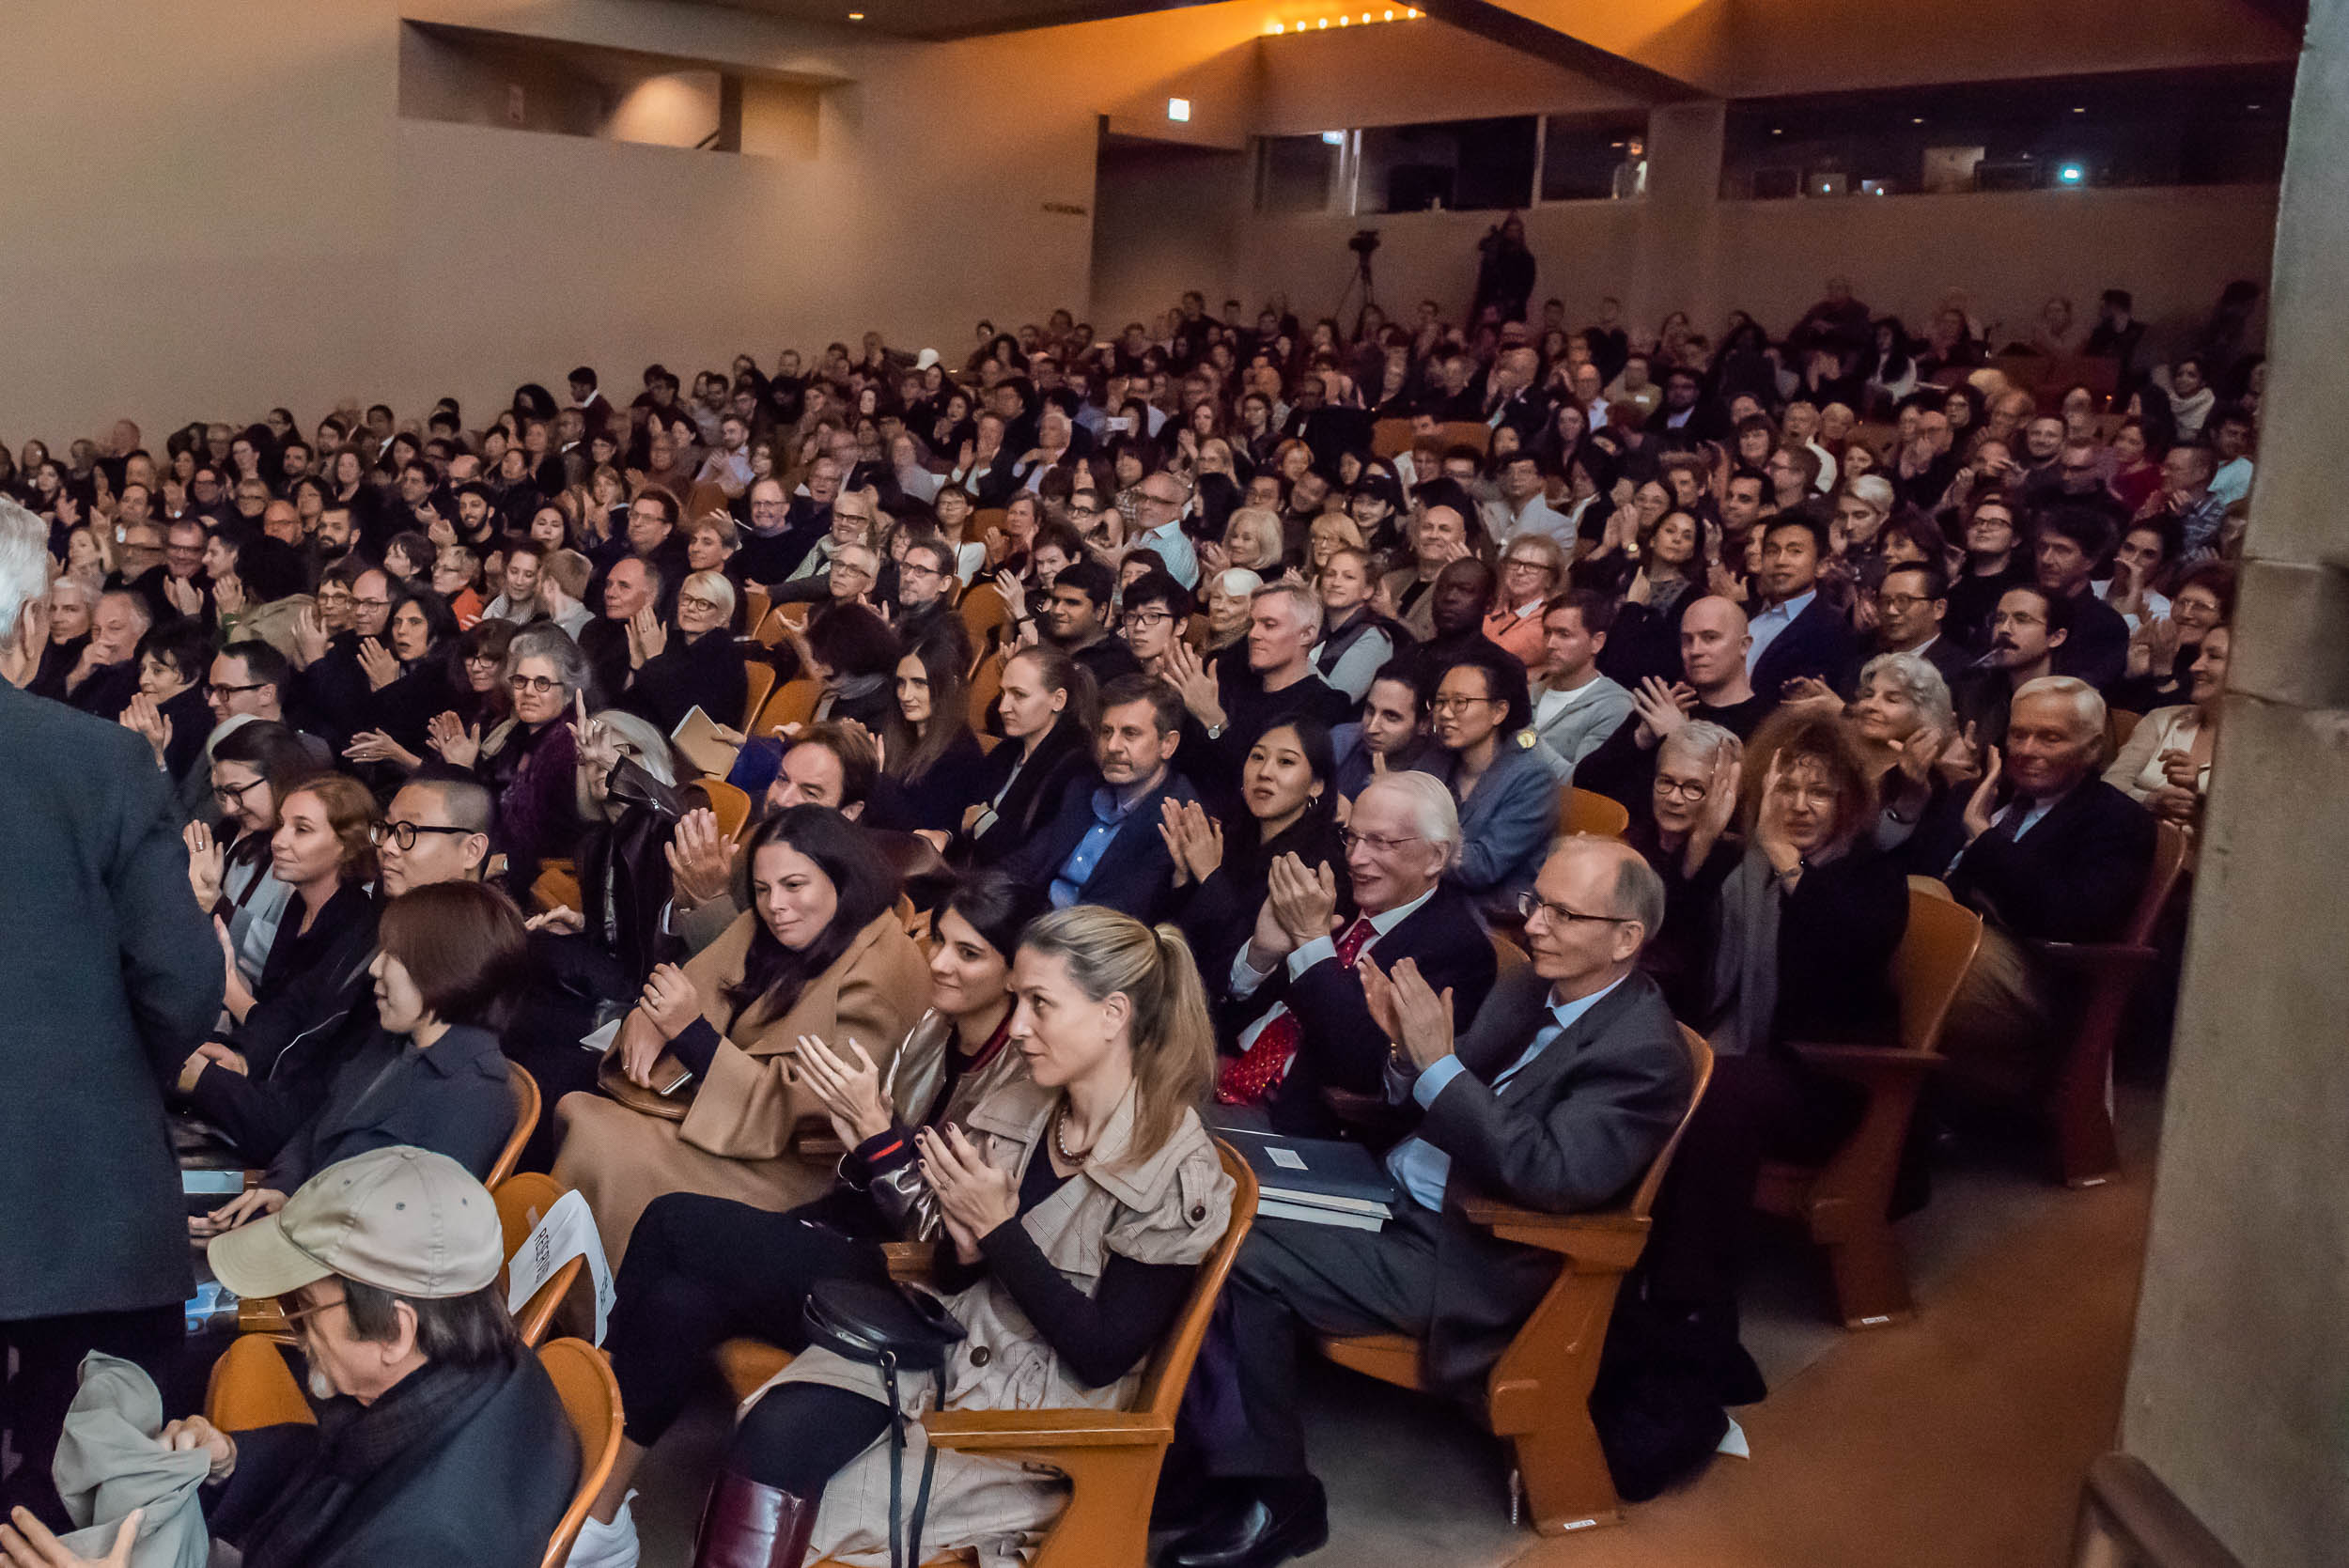 181011 - Tadao Ando Lecture - mark campbell photography-32_Resized.jpg